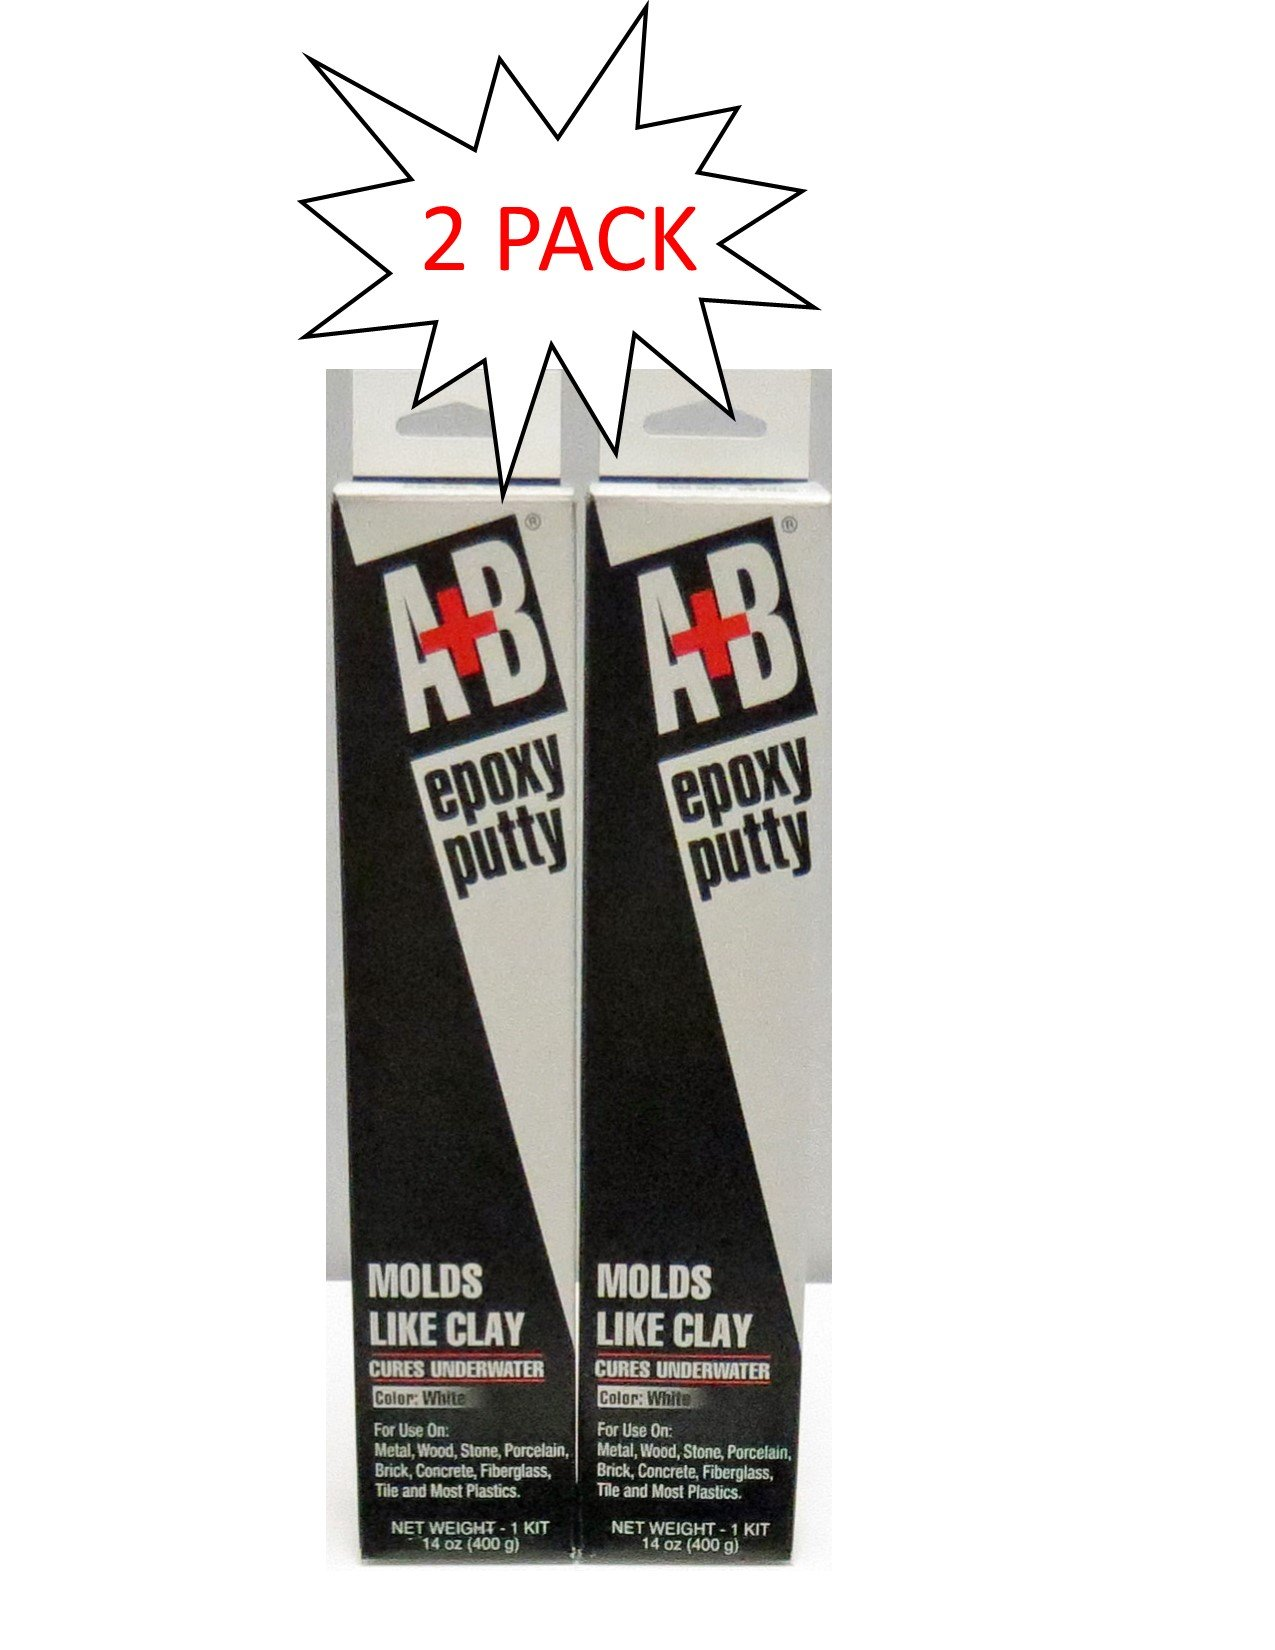 2 PACK of A+B Epoxy 9904K White A+B Rezolin Epoxy Kit, 14 oz. Container Size